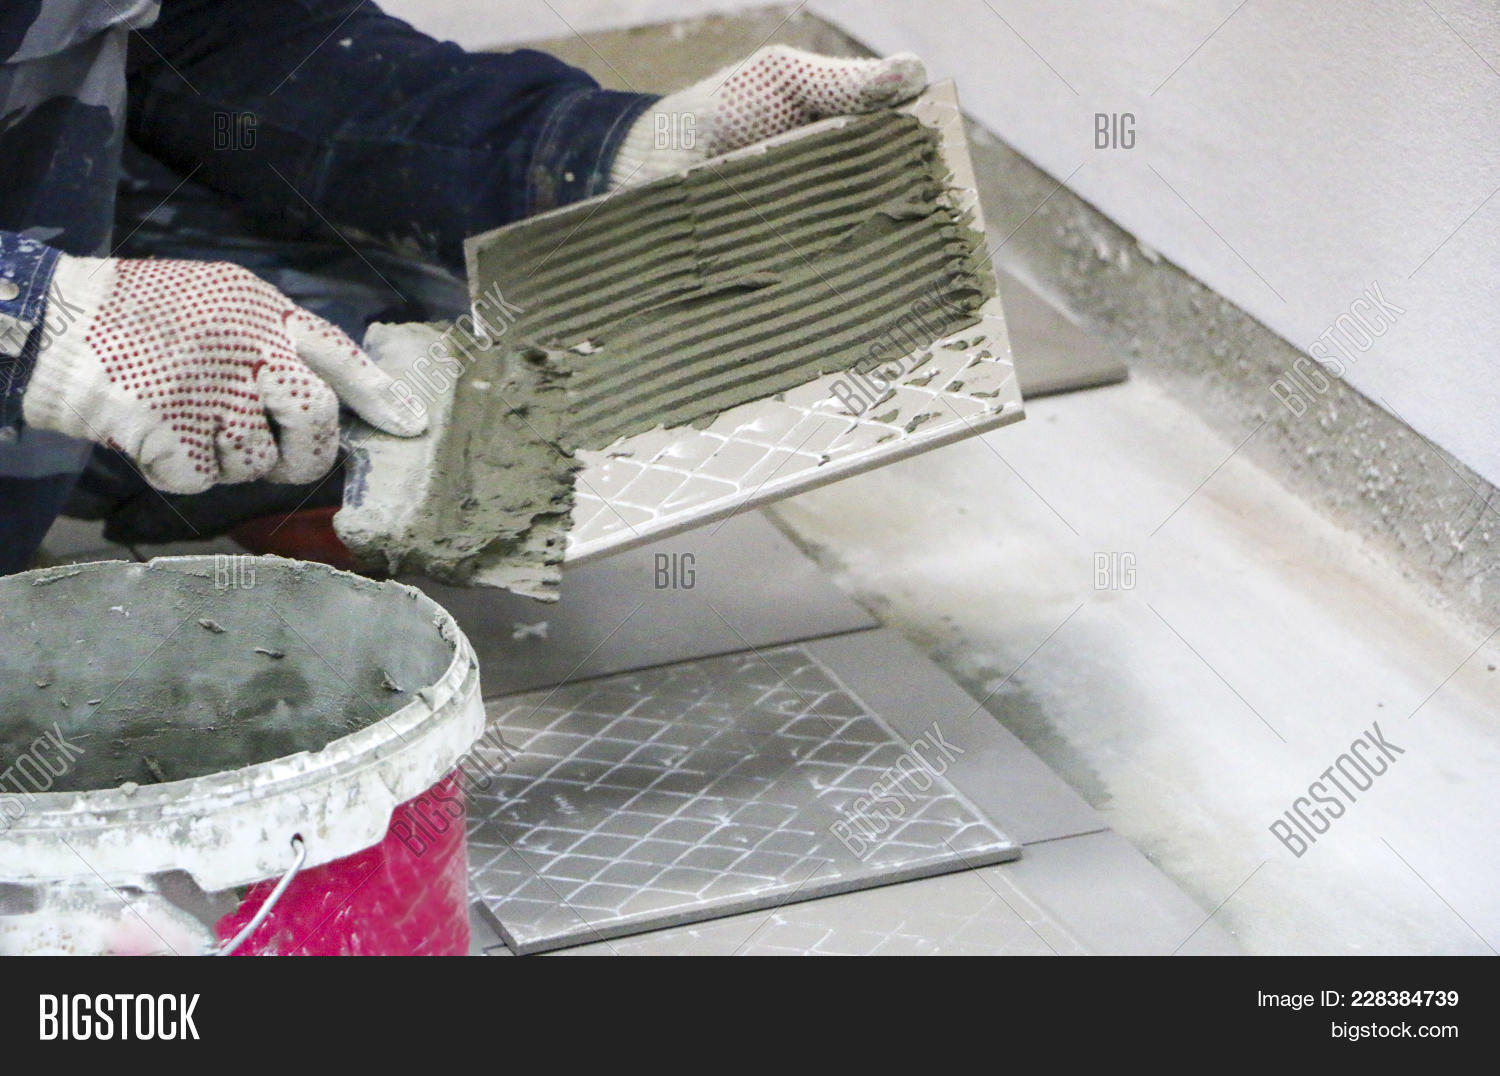 Repairs laying floor ceramic tiles image photo bigstock laying of floor ceramic tiles mens hands in gloves with spatula spread dailygadgetfo Gallery